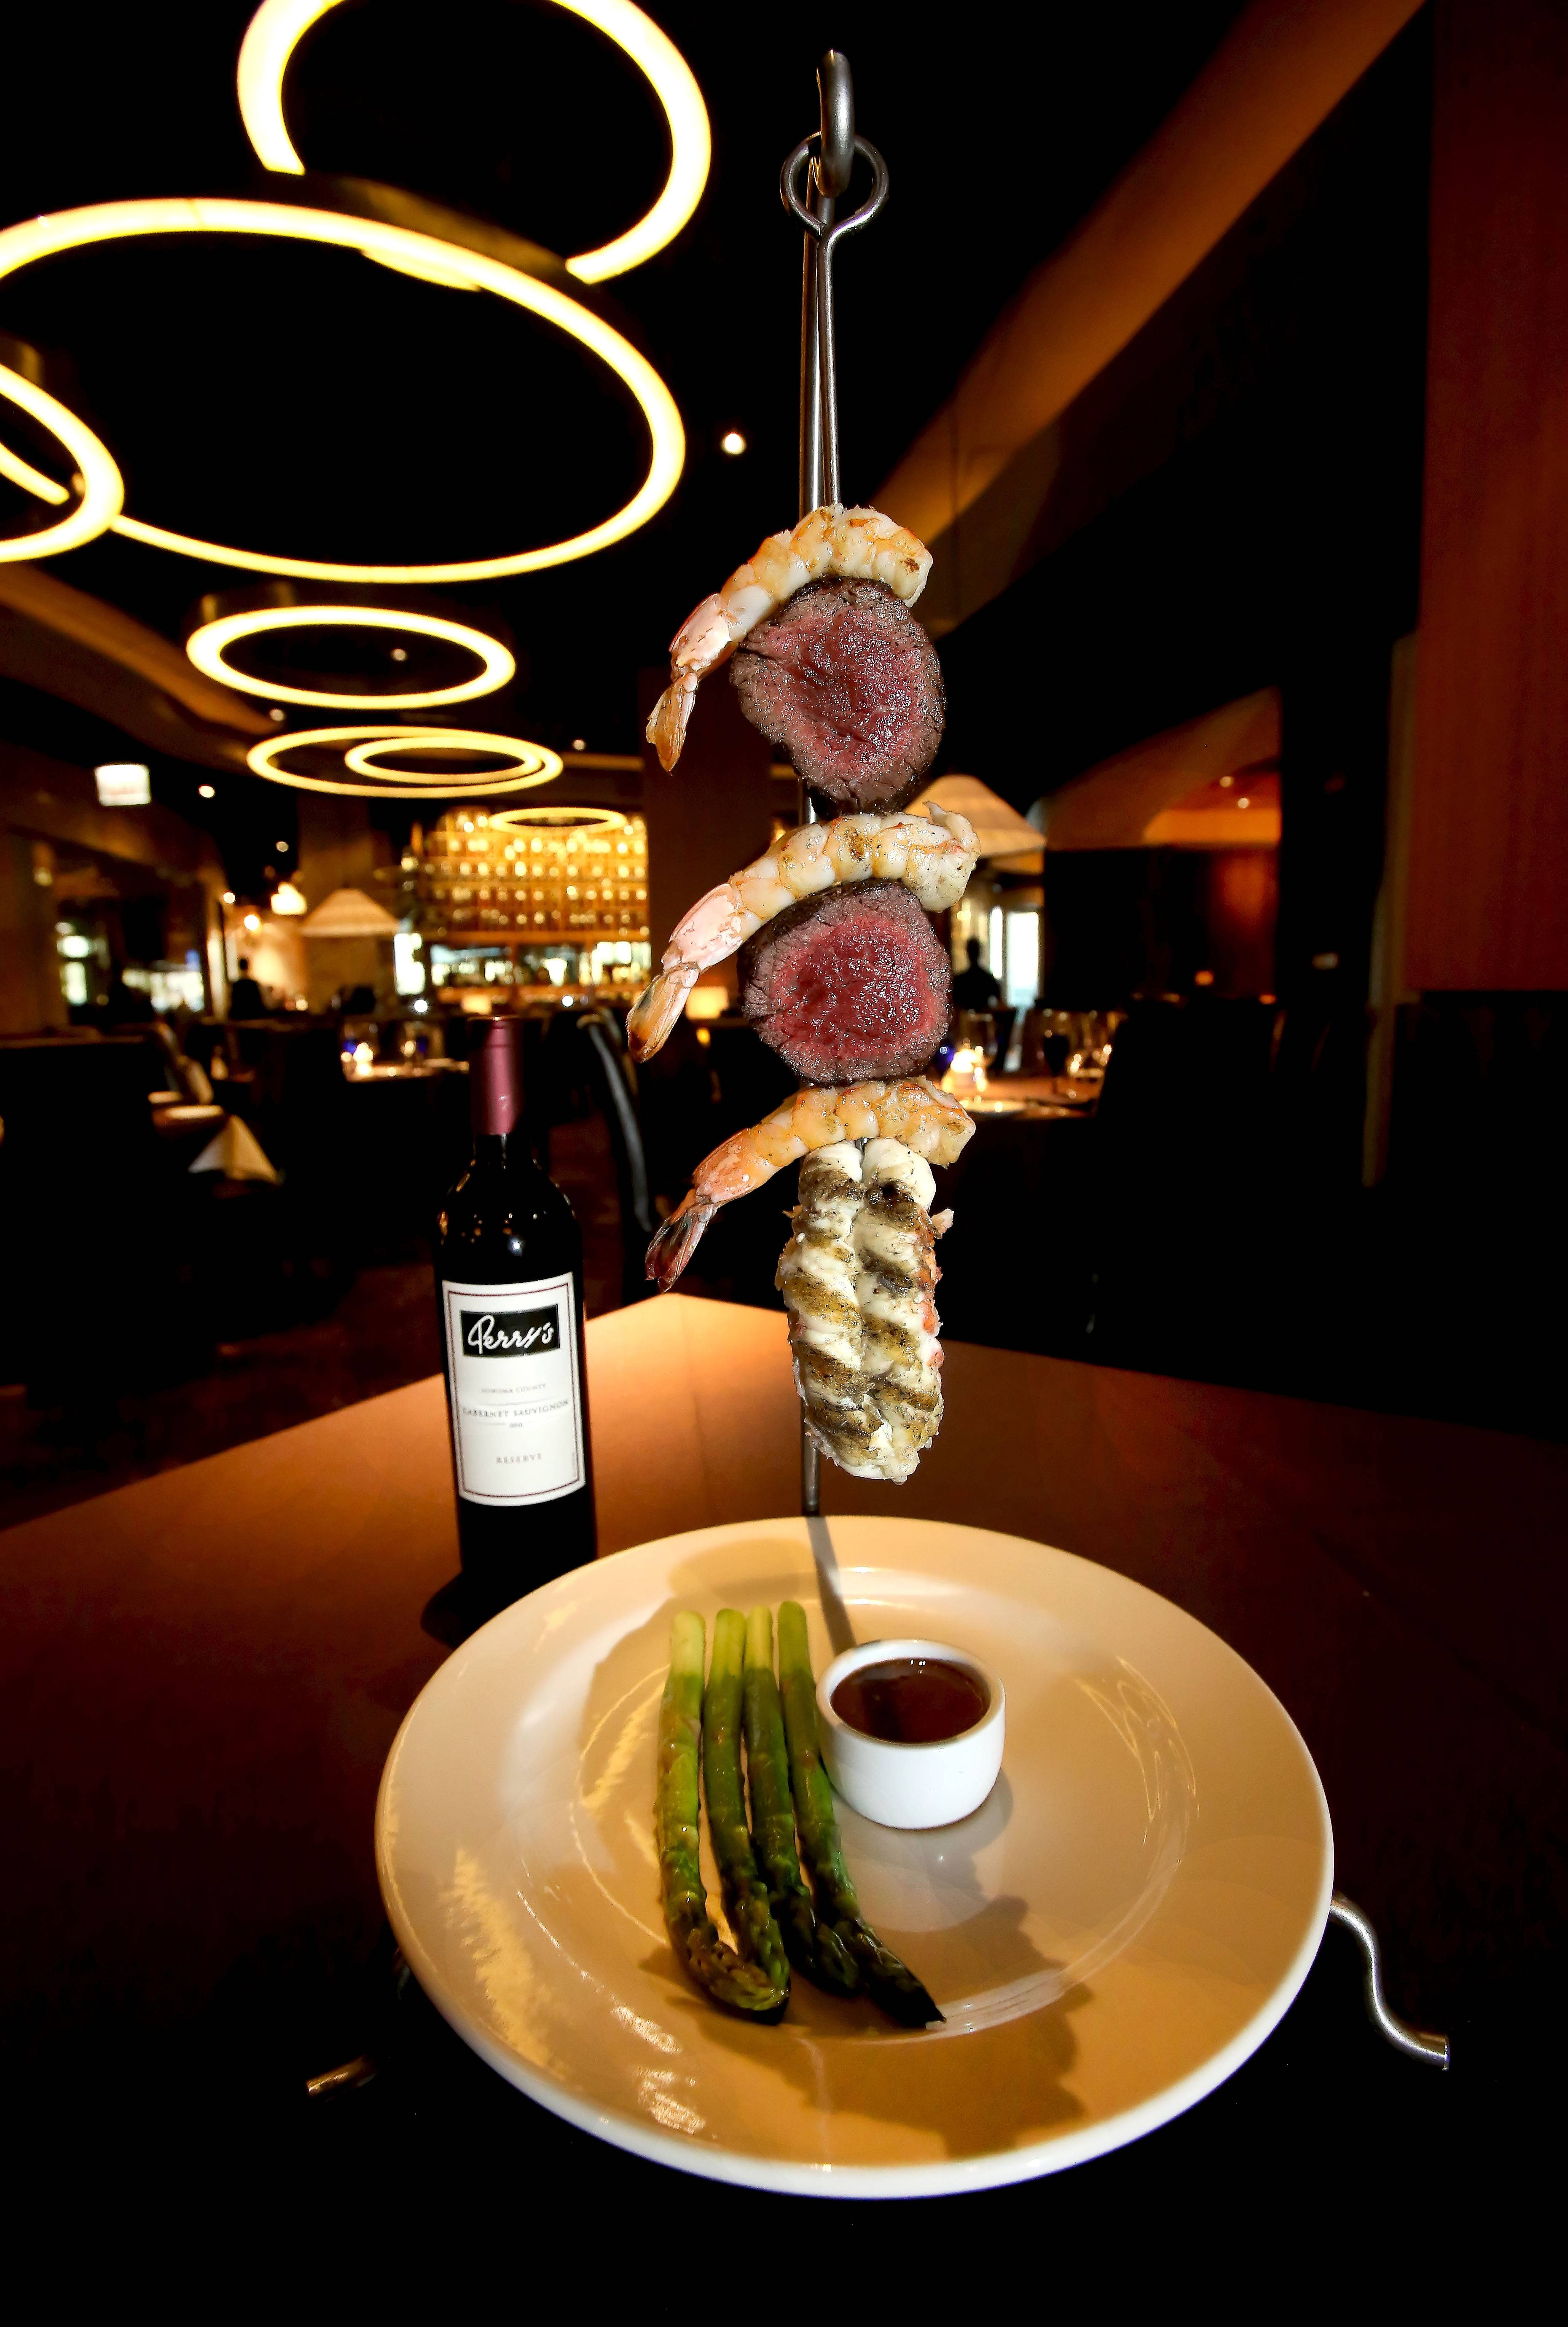 Hunker down for Symphony Kabobs at Perry's Steakhouse and Grille in Oak Brook.